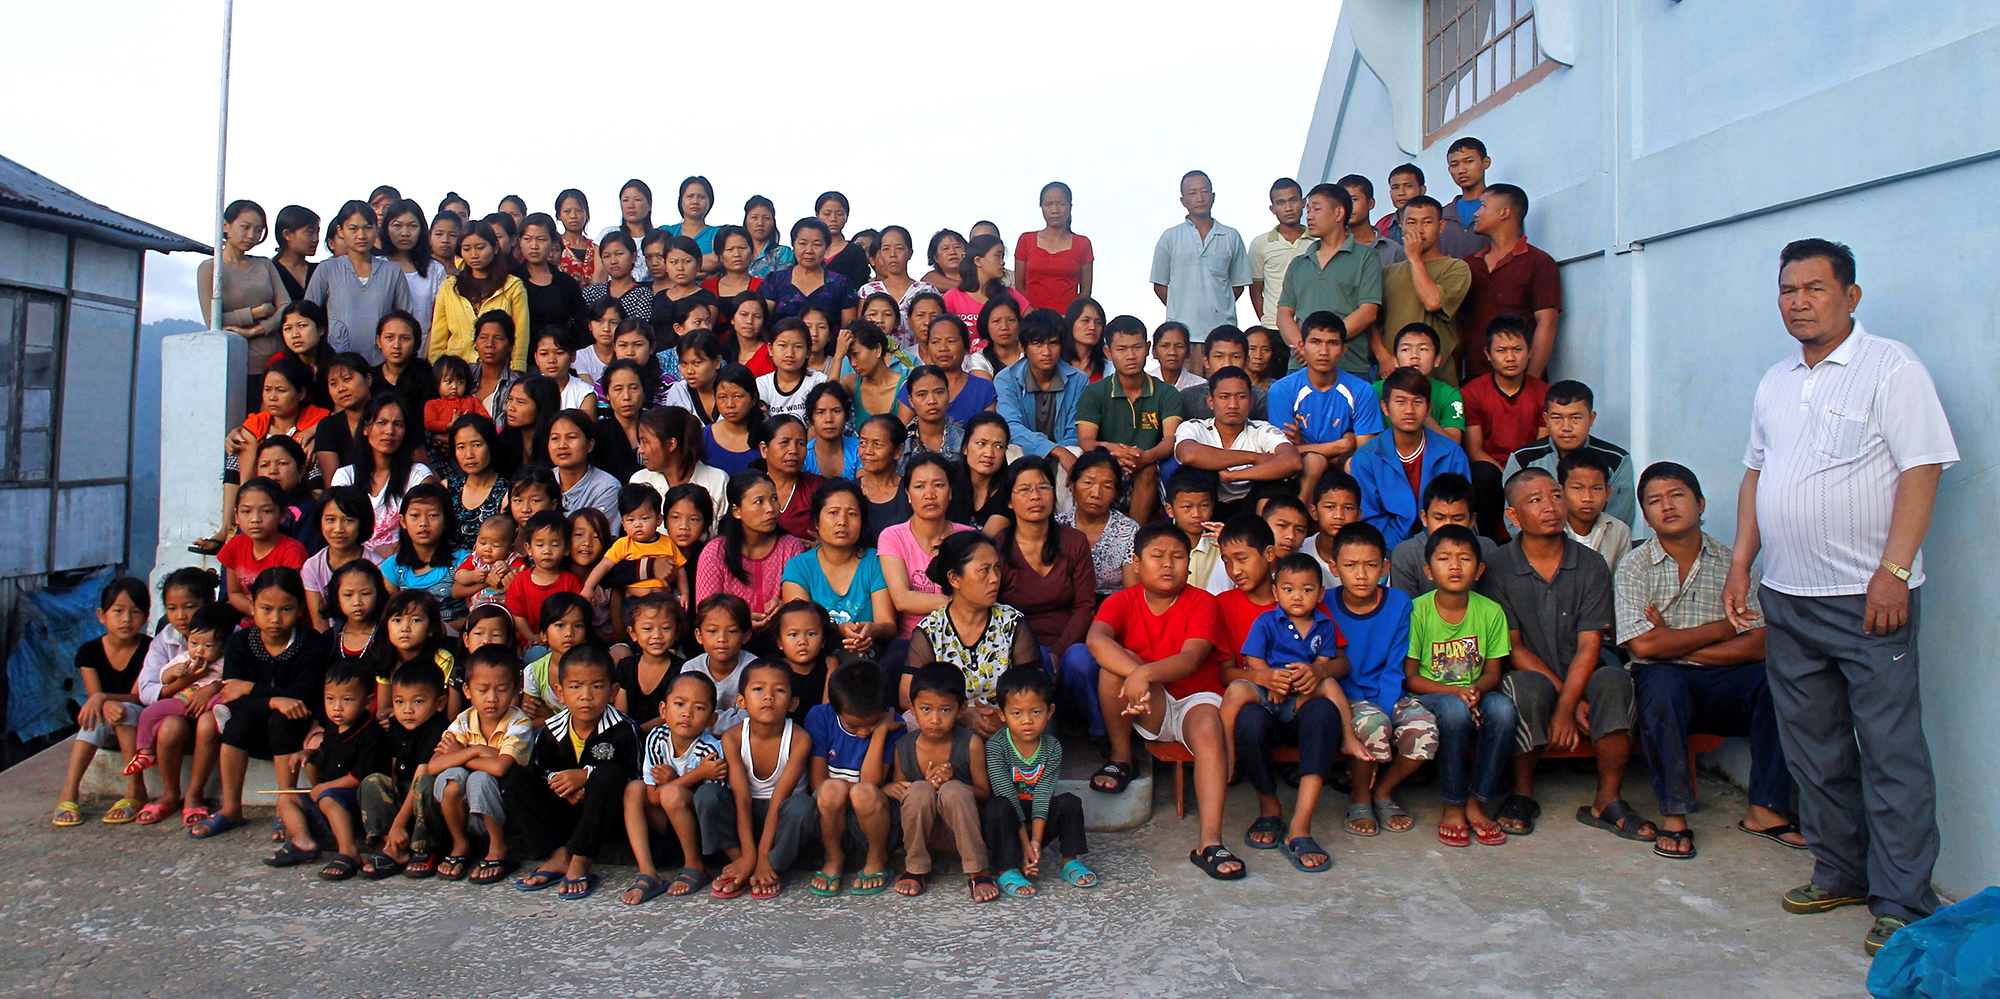 FILE PHOTO: Family members of Ziona poses for group photograph outside their residence in village Baktawng